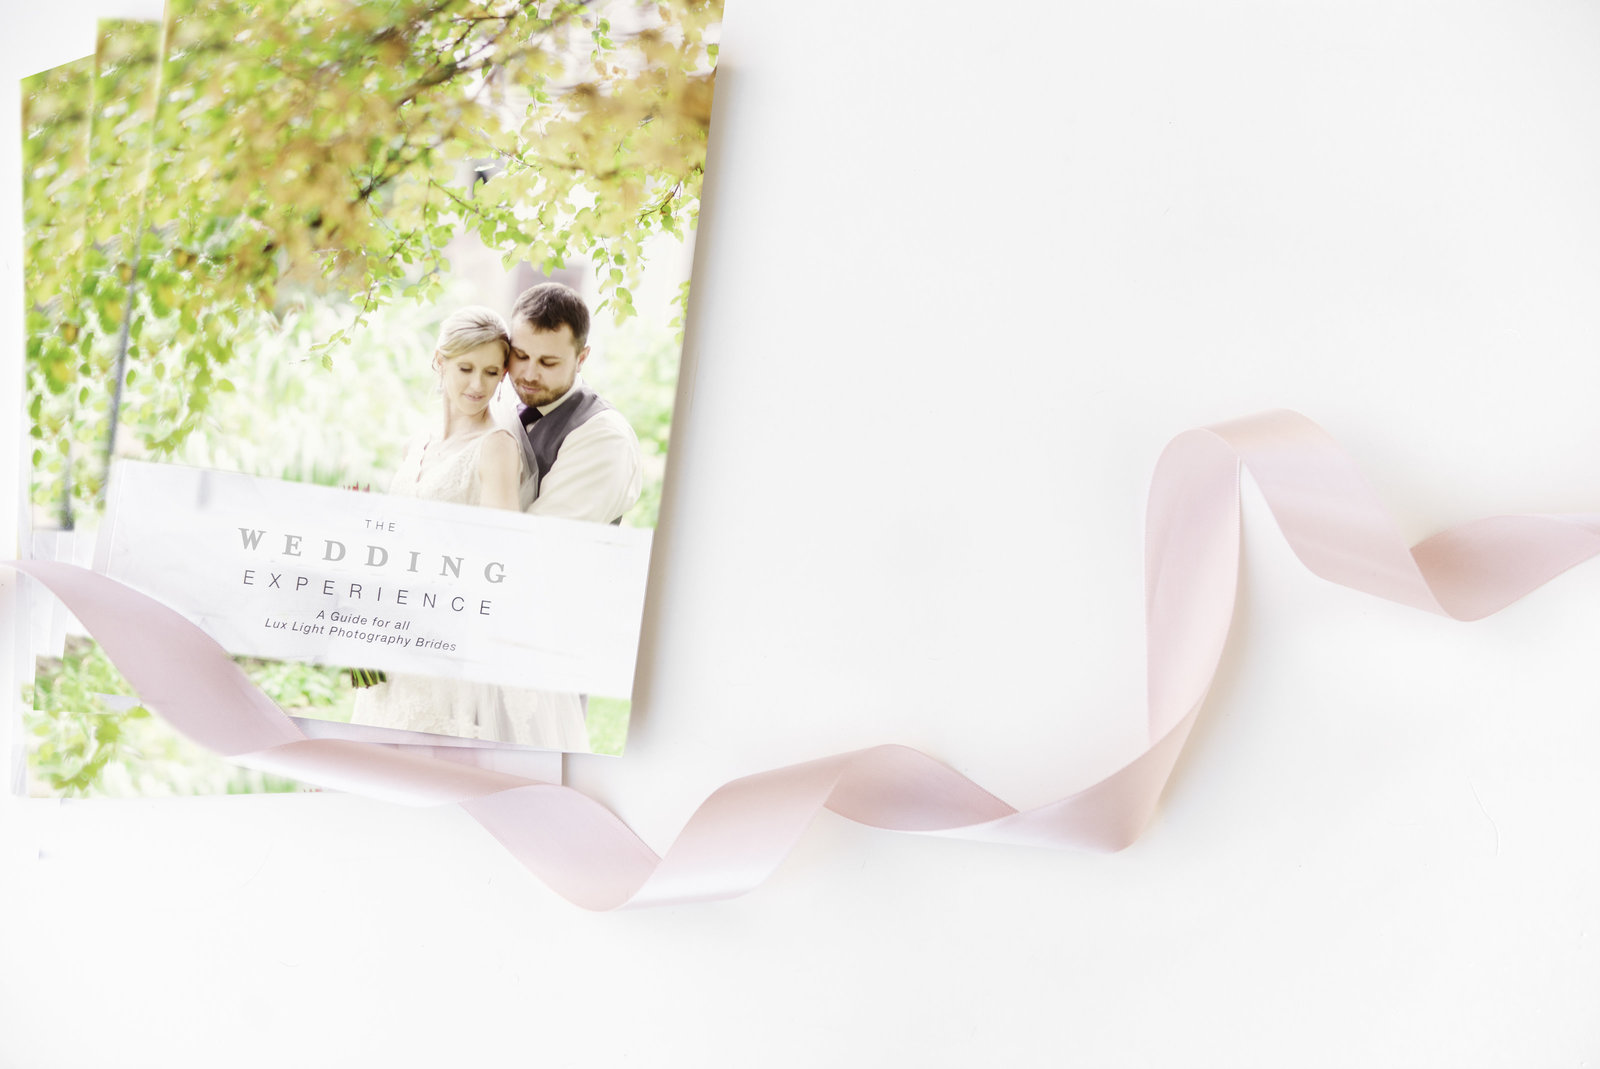 Traverse City Michigan Wedding Photography Packages